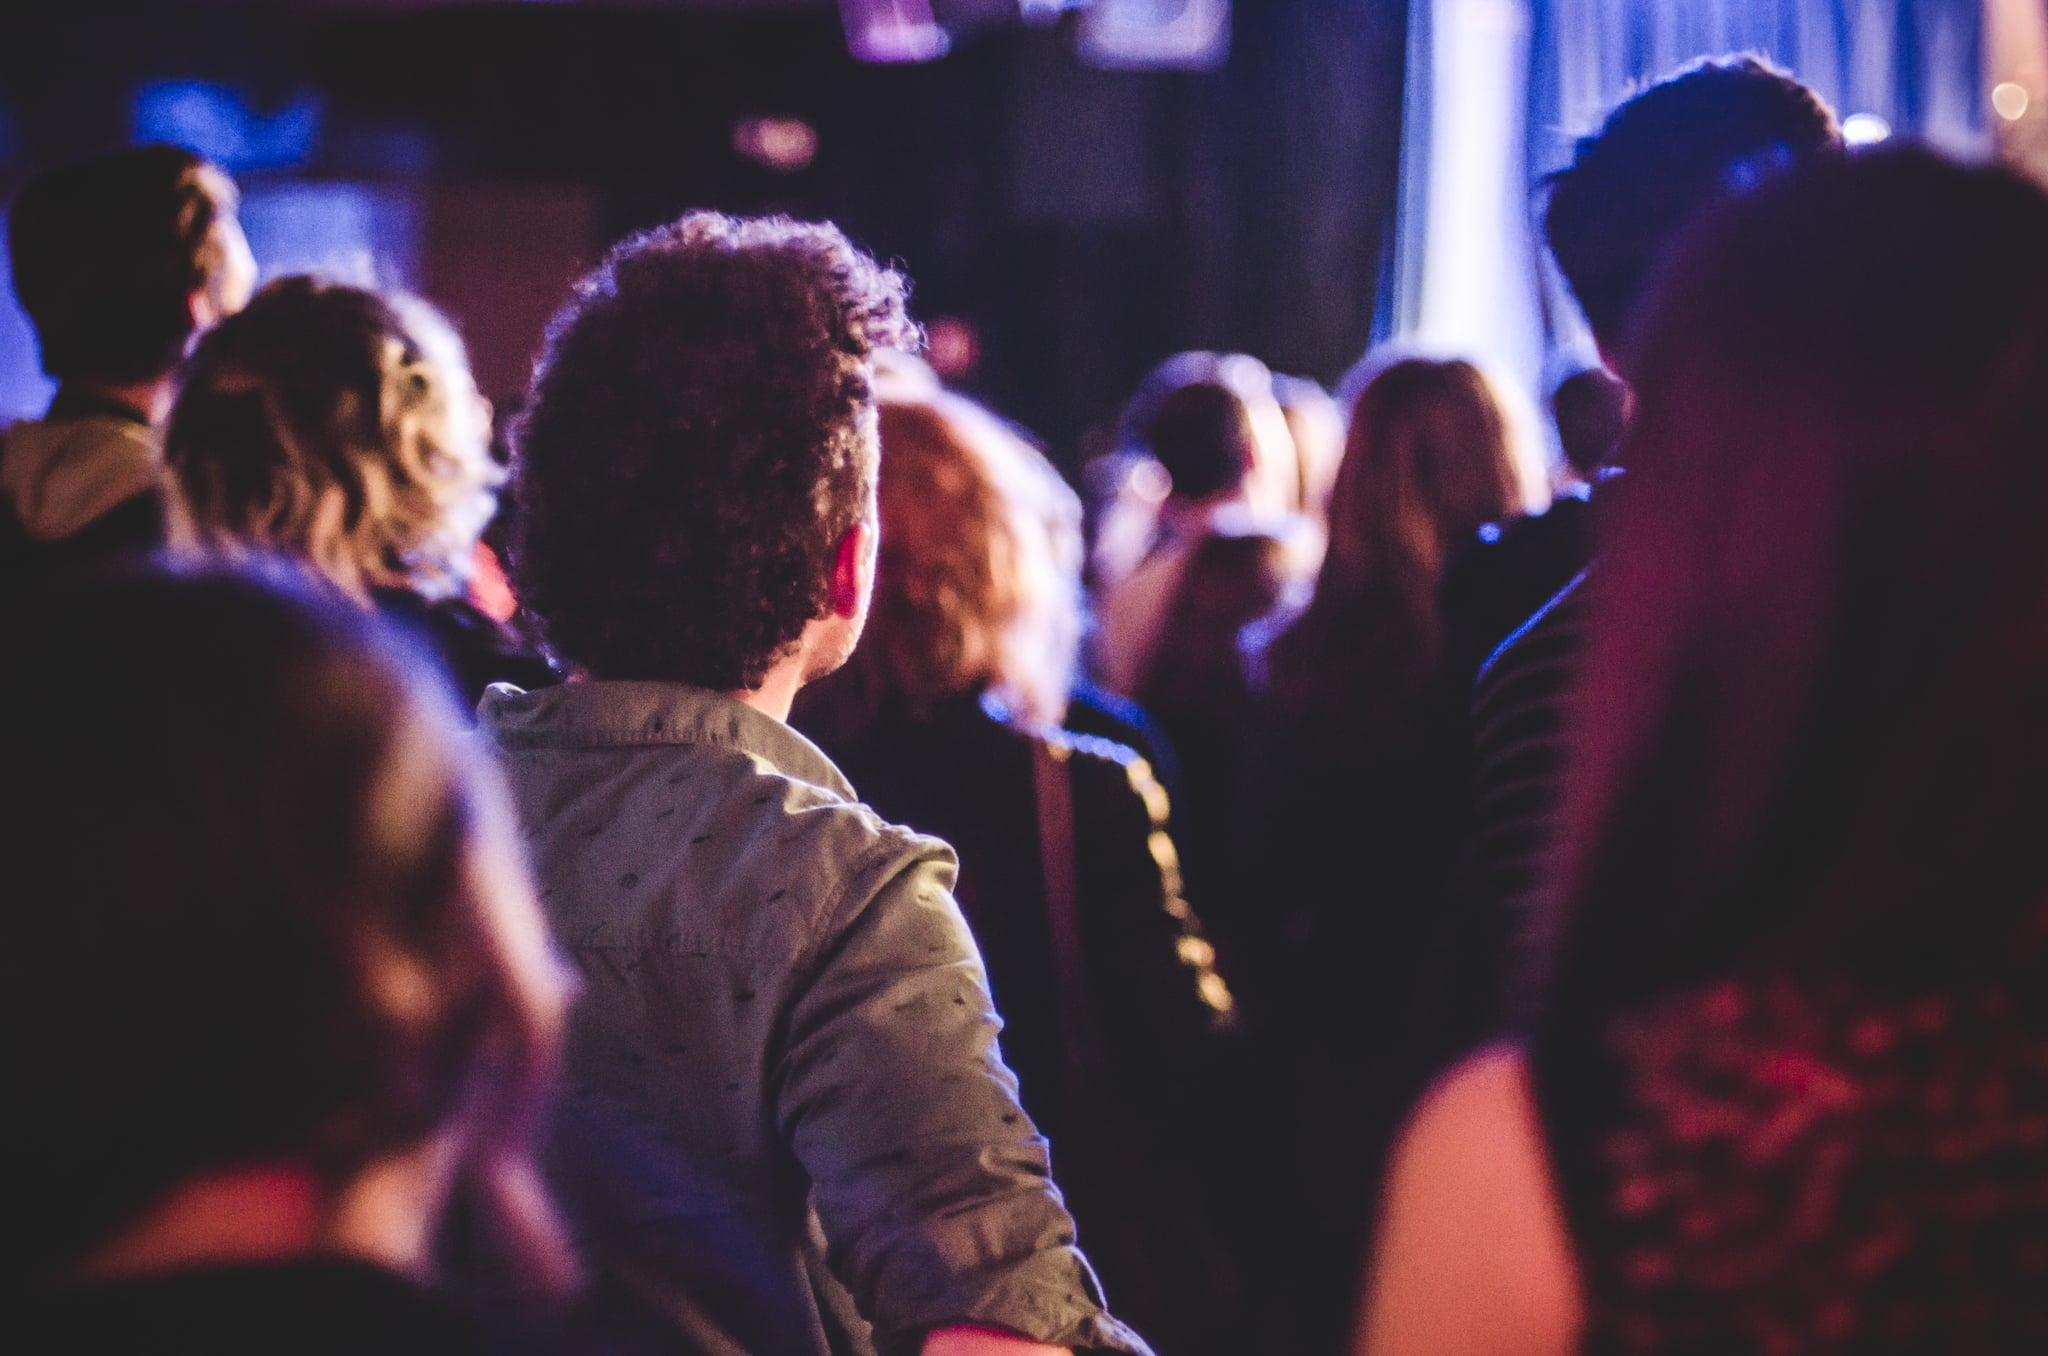 Crowd of People Watching Concert in Small Club Venue. (Photo by: GHI/Education Images/Universal Images Group via Getty Images)